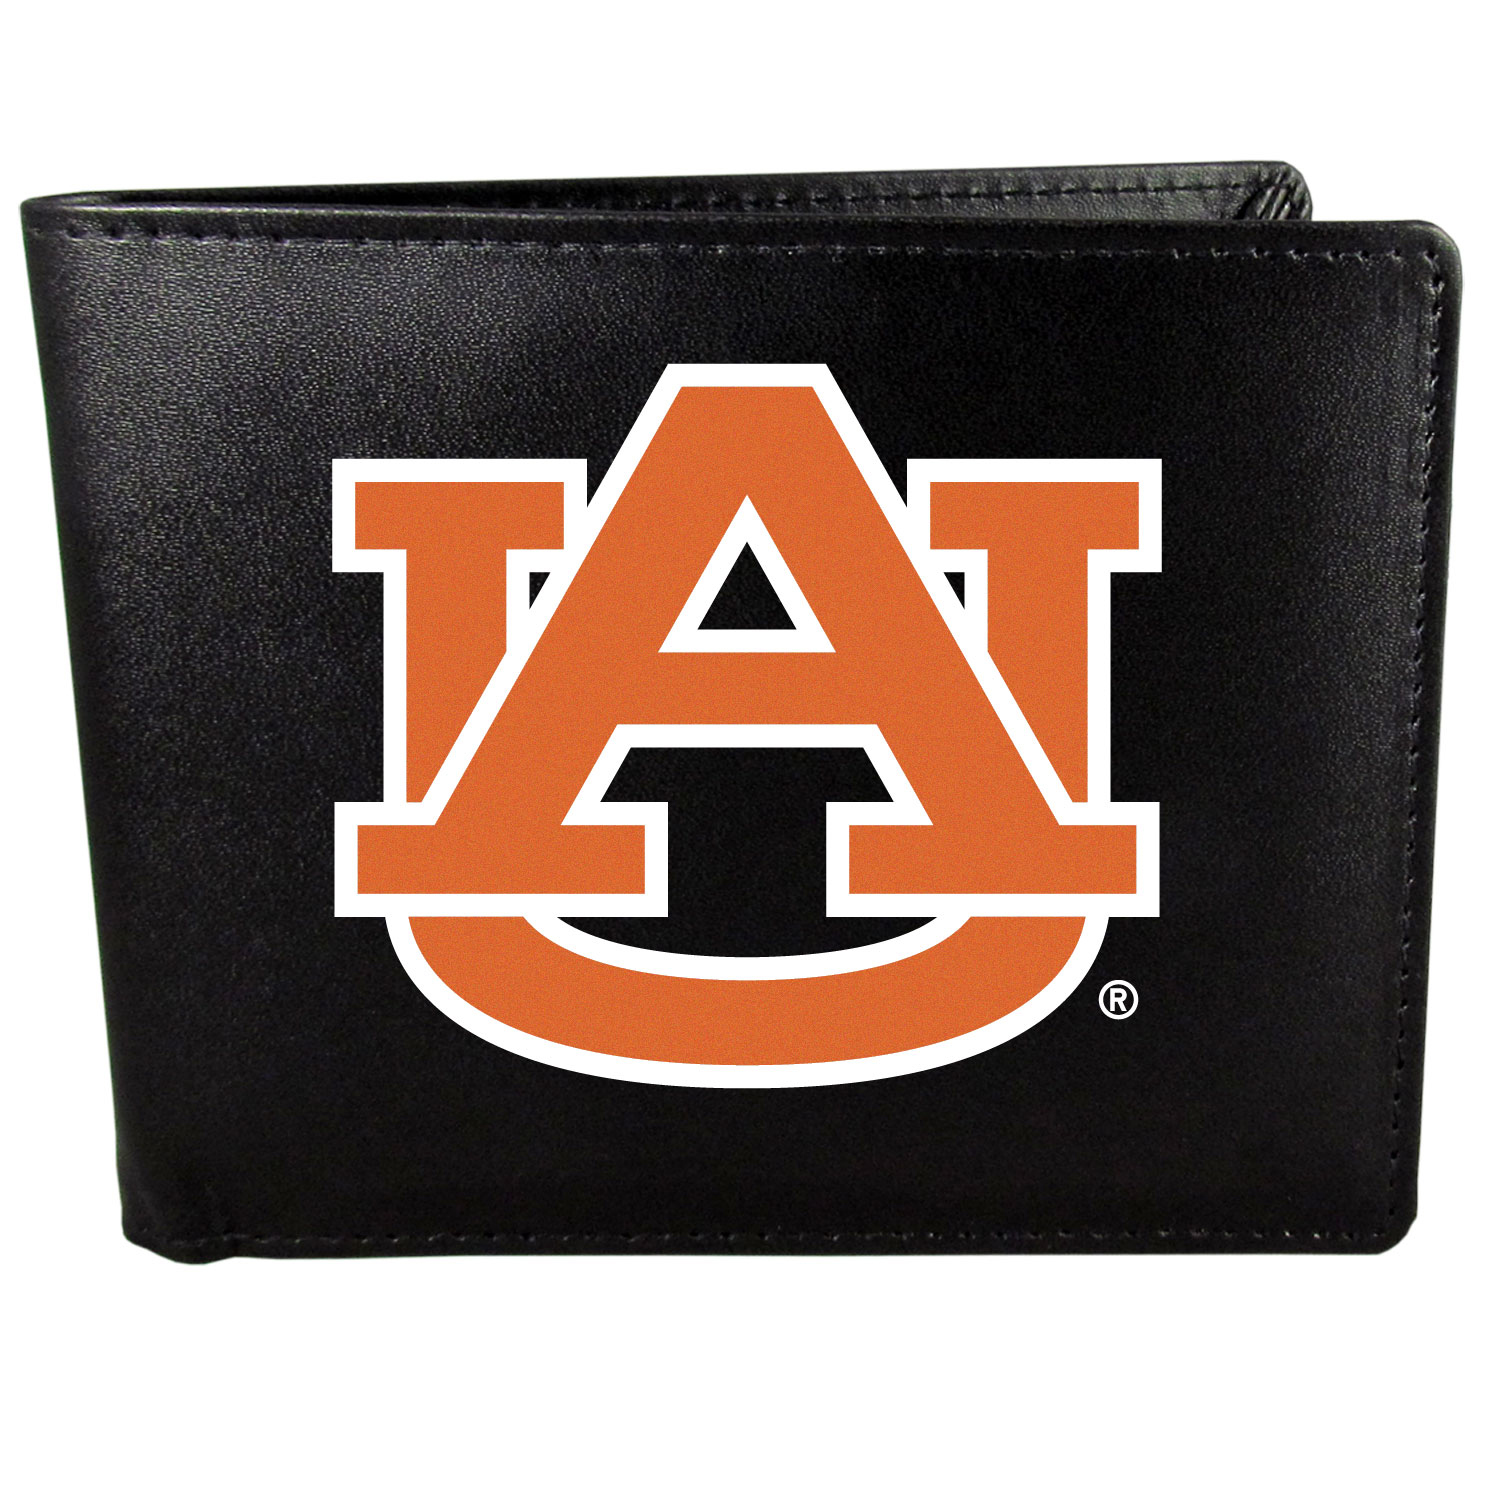 Auburn Tigers Leather Bi-fold Wallet, Large Logo - Our classic fine leather bi-fold wallet is meticulously crafted with genuine leather that will age beautifully so you will have a quality wallet for years to come. The wallet opens to a large, billfold pocket and numerous credit card slots and has a convenient windowed ID slot. The front of the wallet features an extra large Auburn Tigers printed logo.